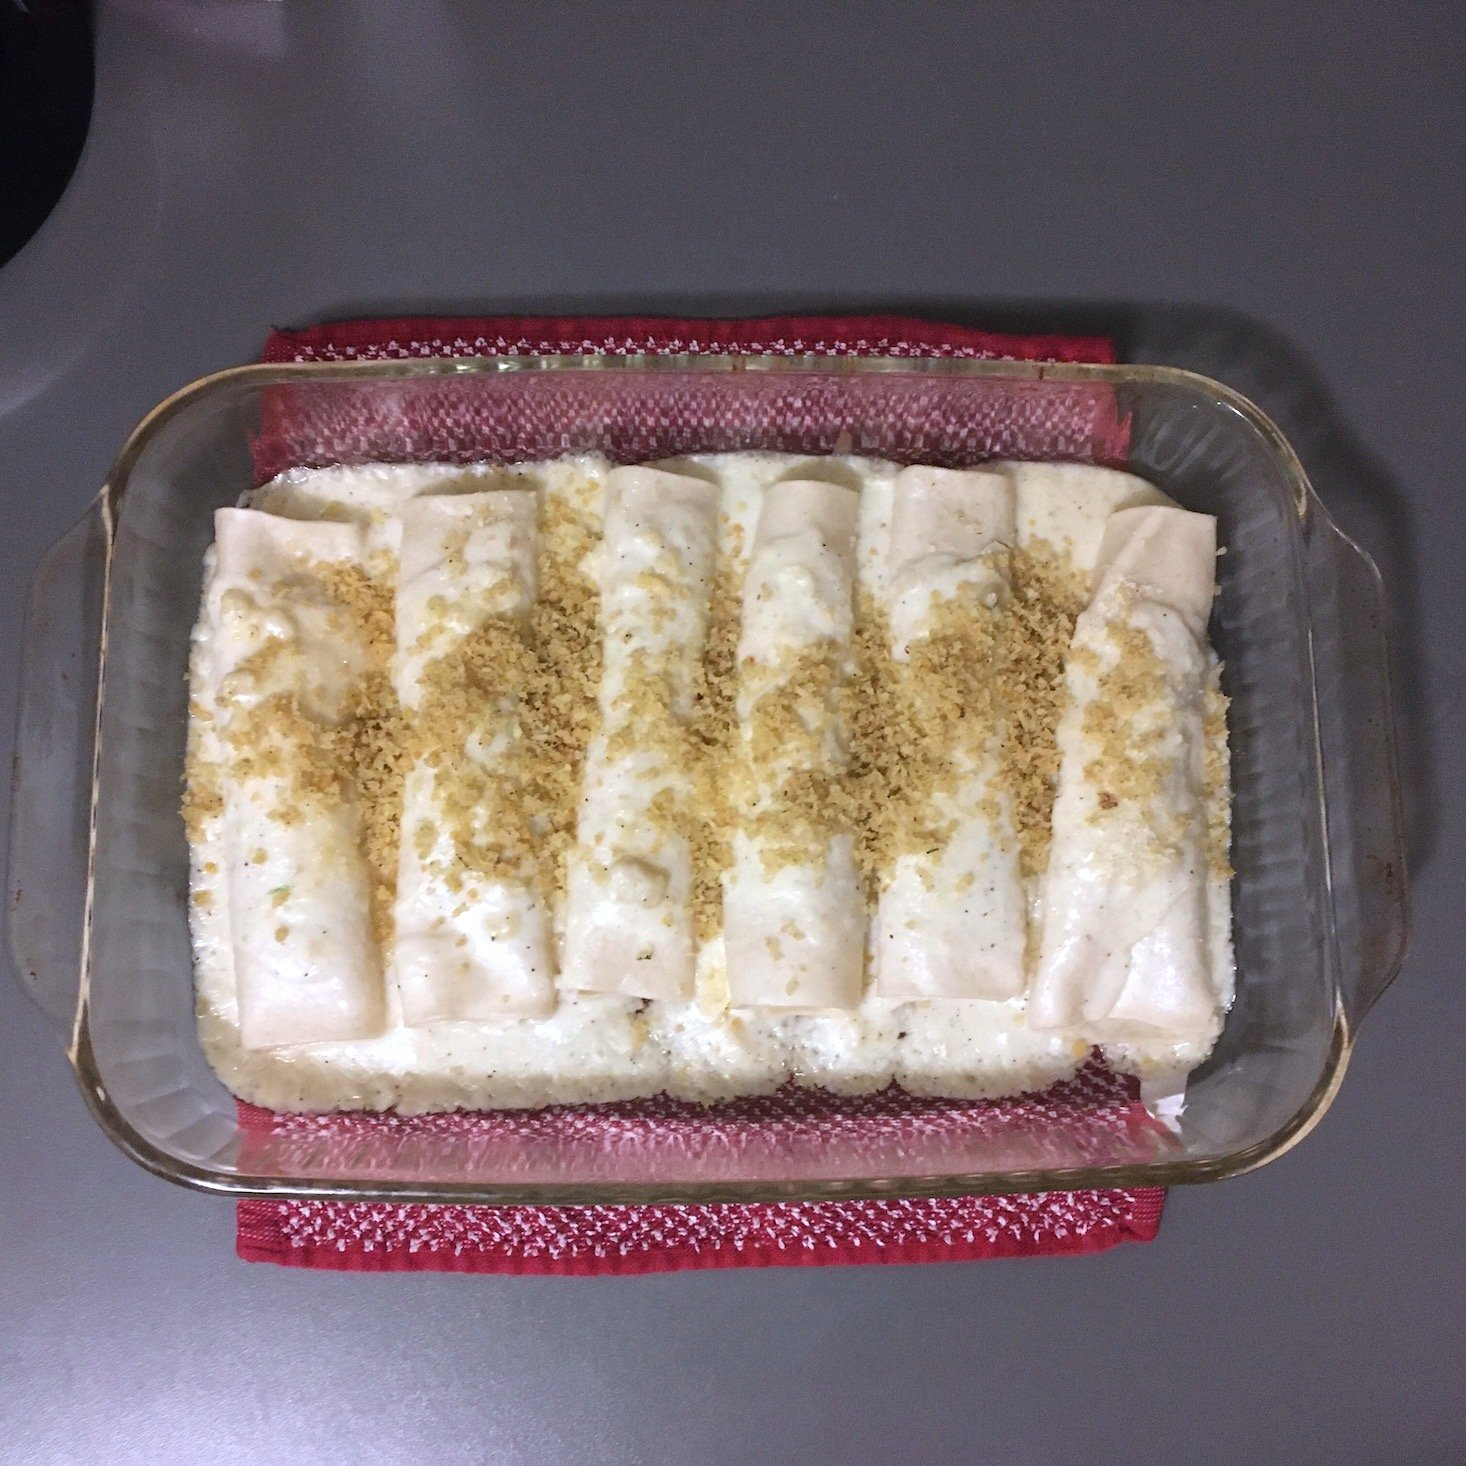 brussels sprouts canneloni topped with breadcrumbs in baking dish